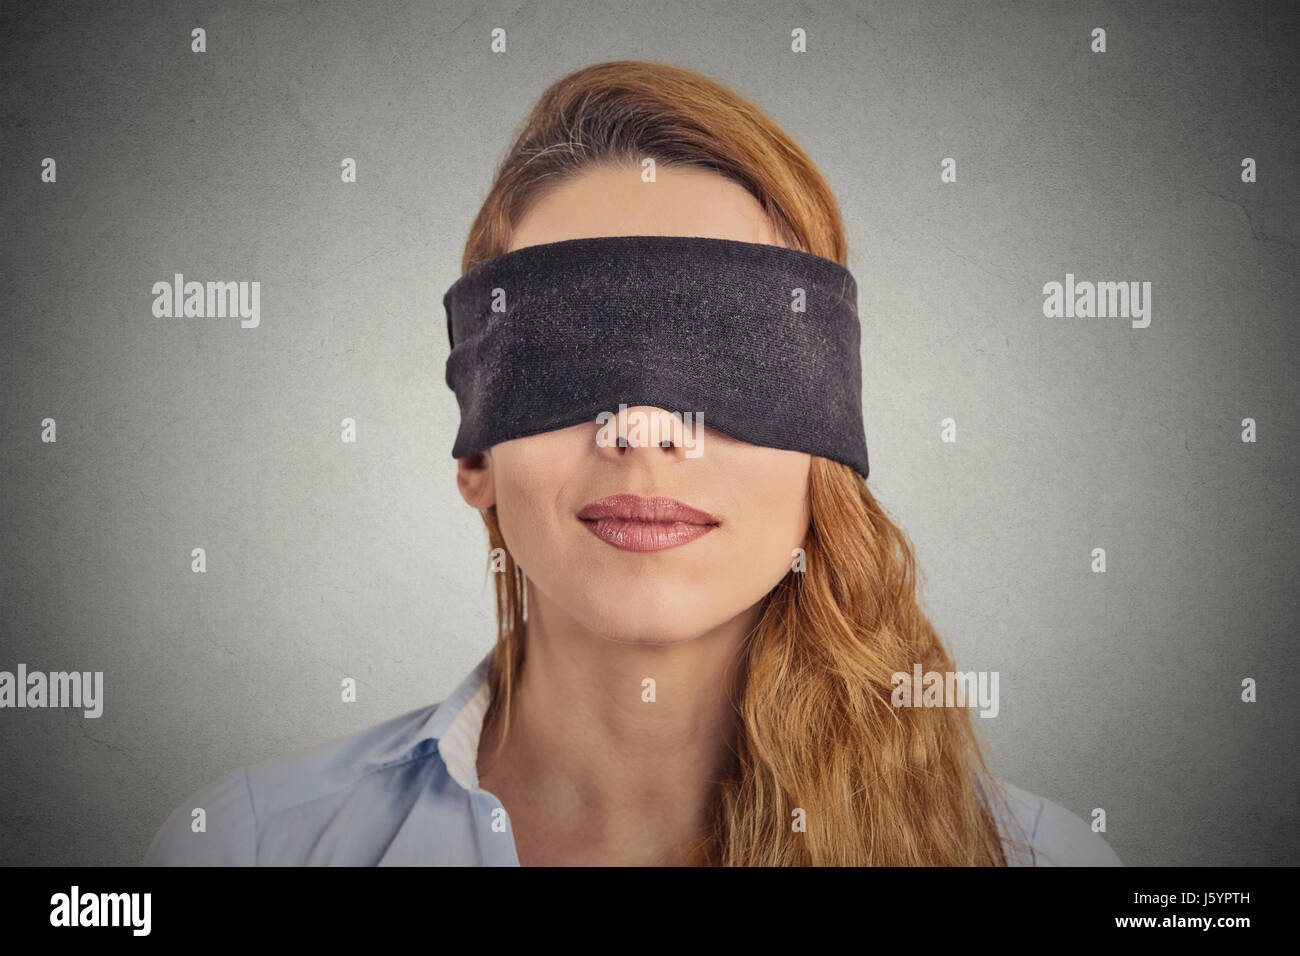 Blindfolded red haired woman - Stock Image